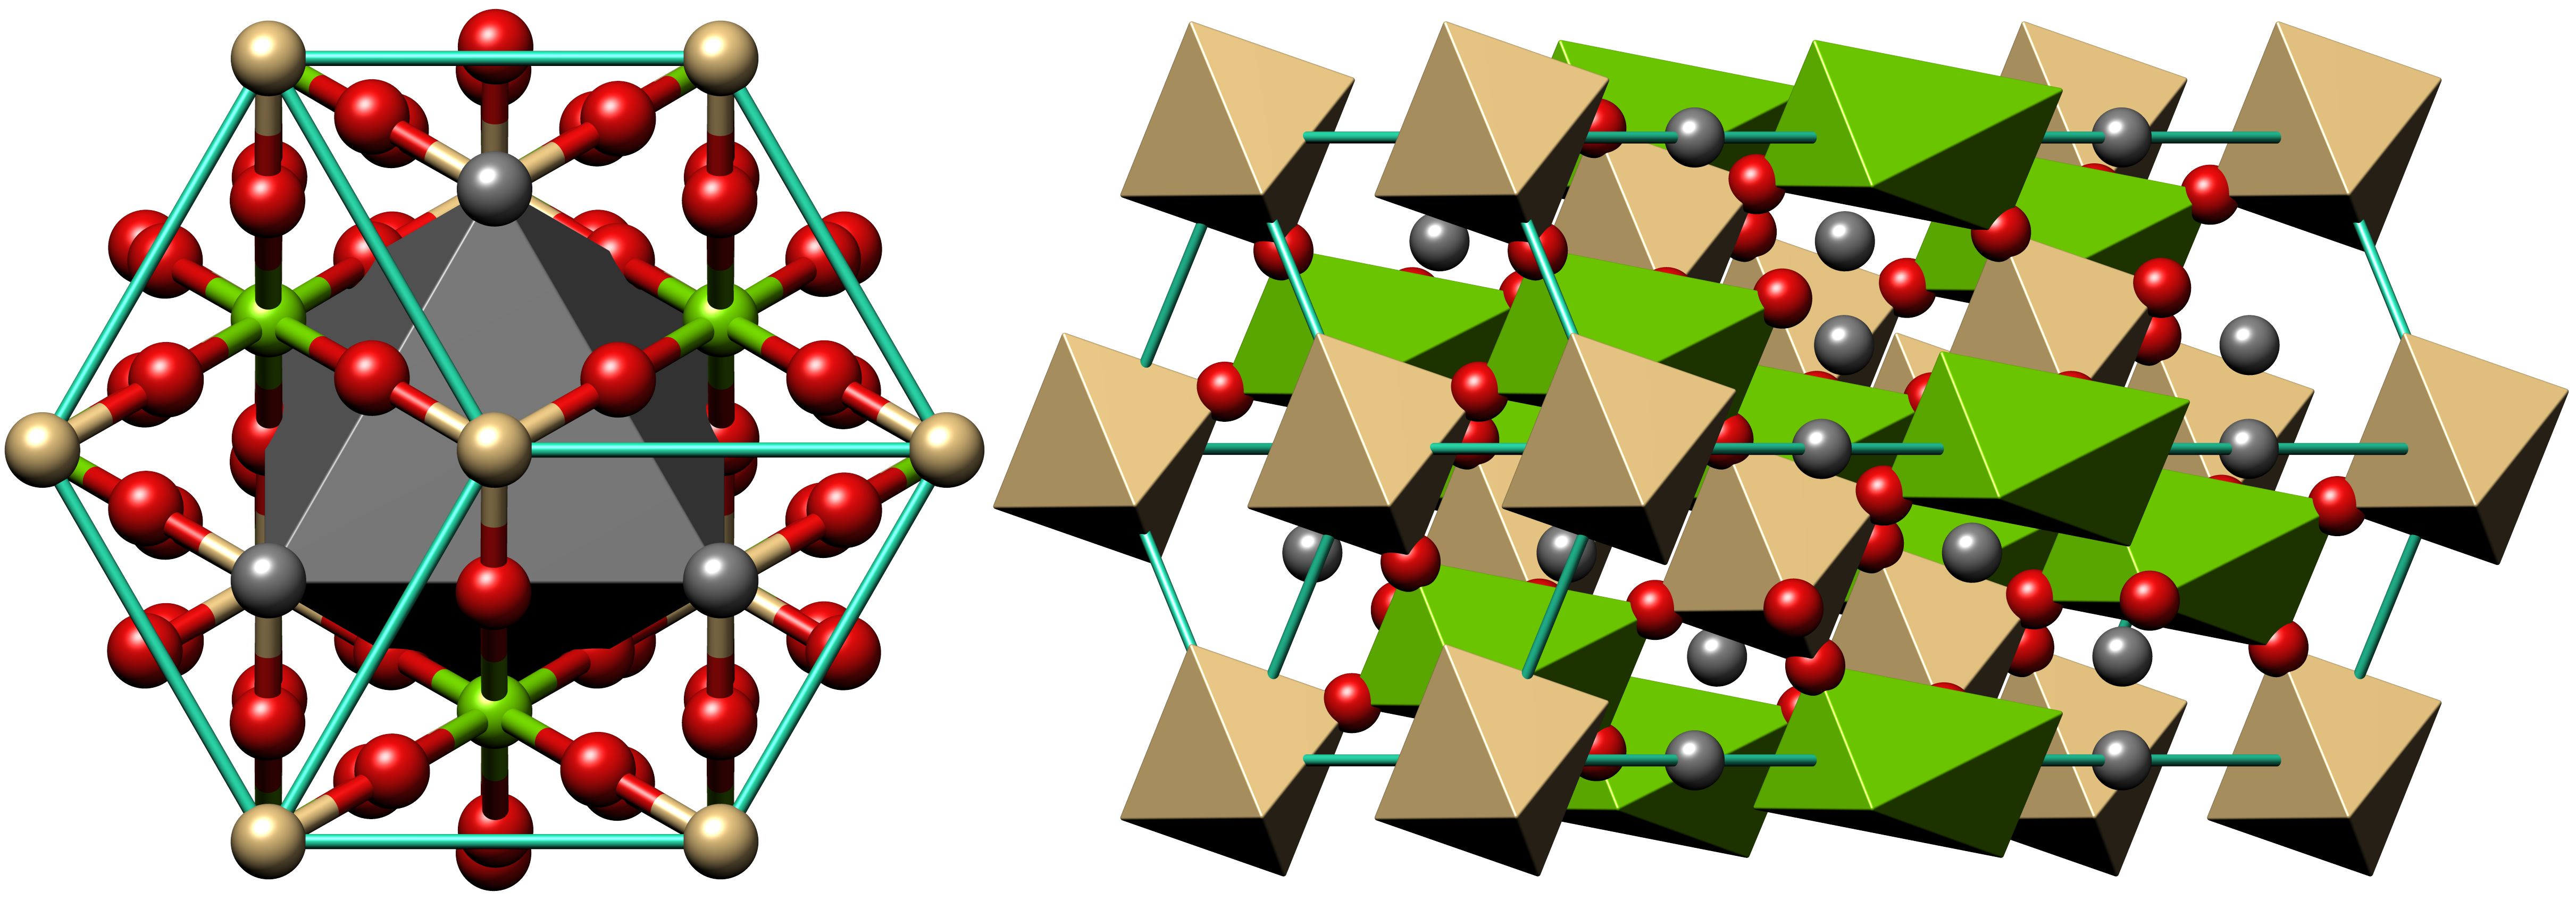 Crystal clipart crystal structure. File cd dolomite png